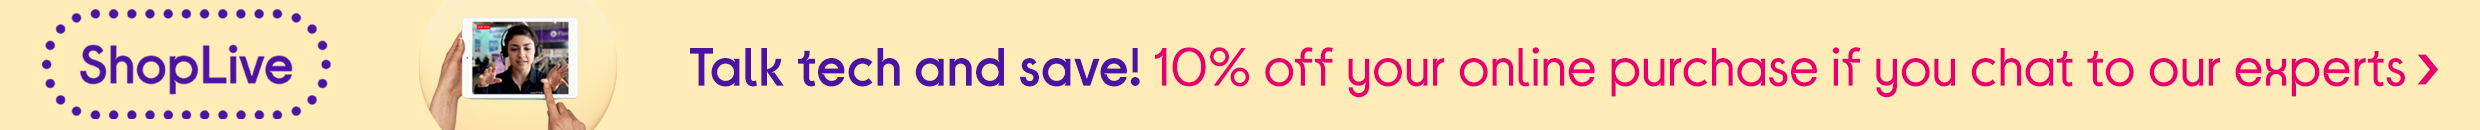 10% off with Shoplive